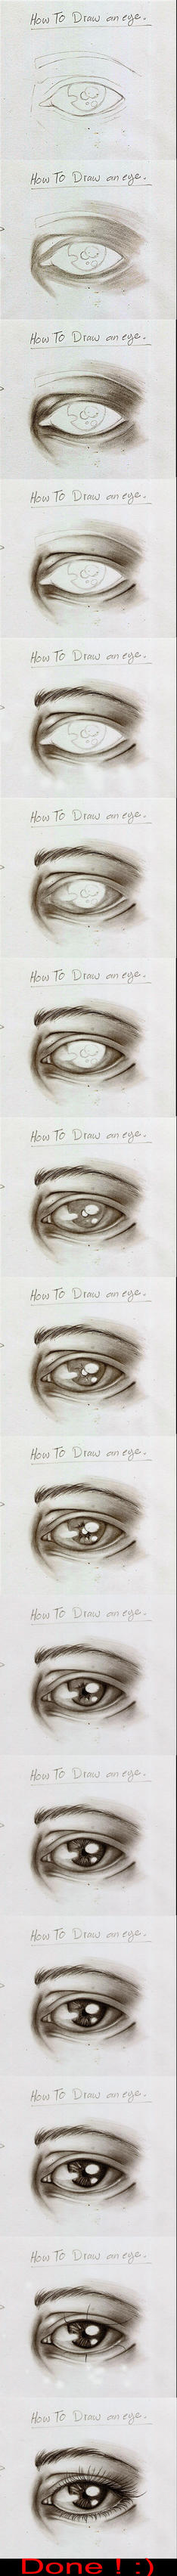 How To Draw an Eye by Simiko